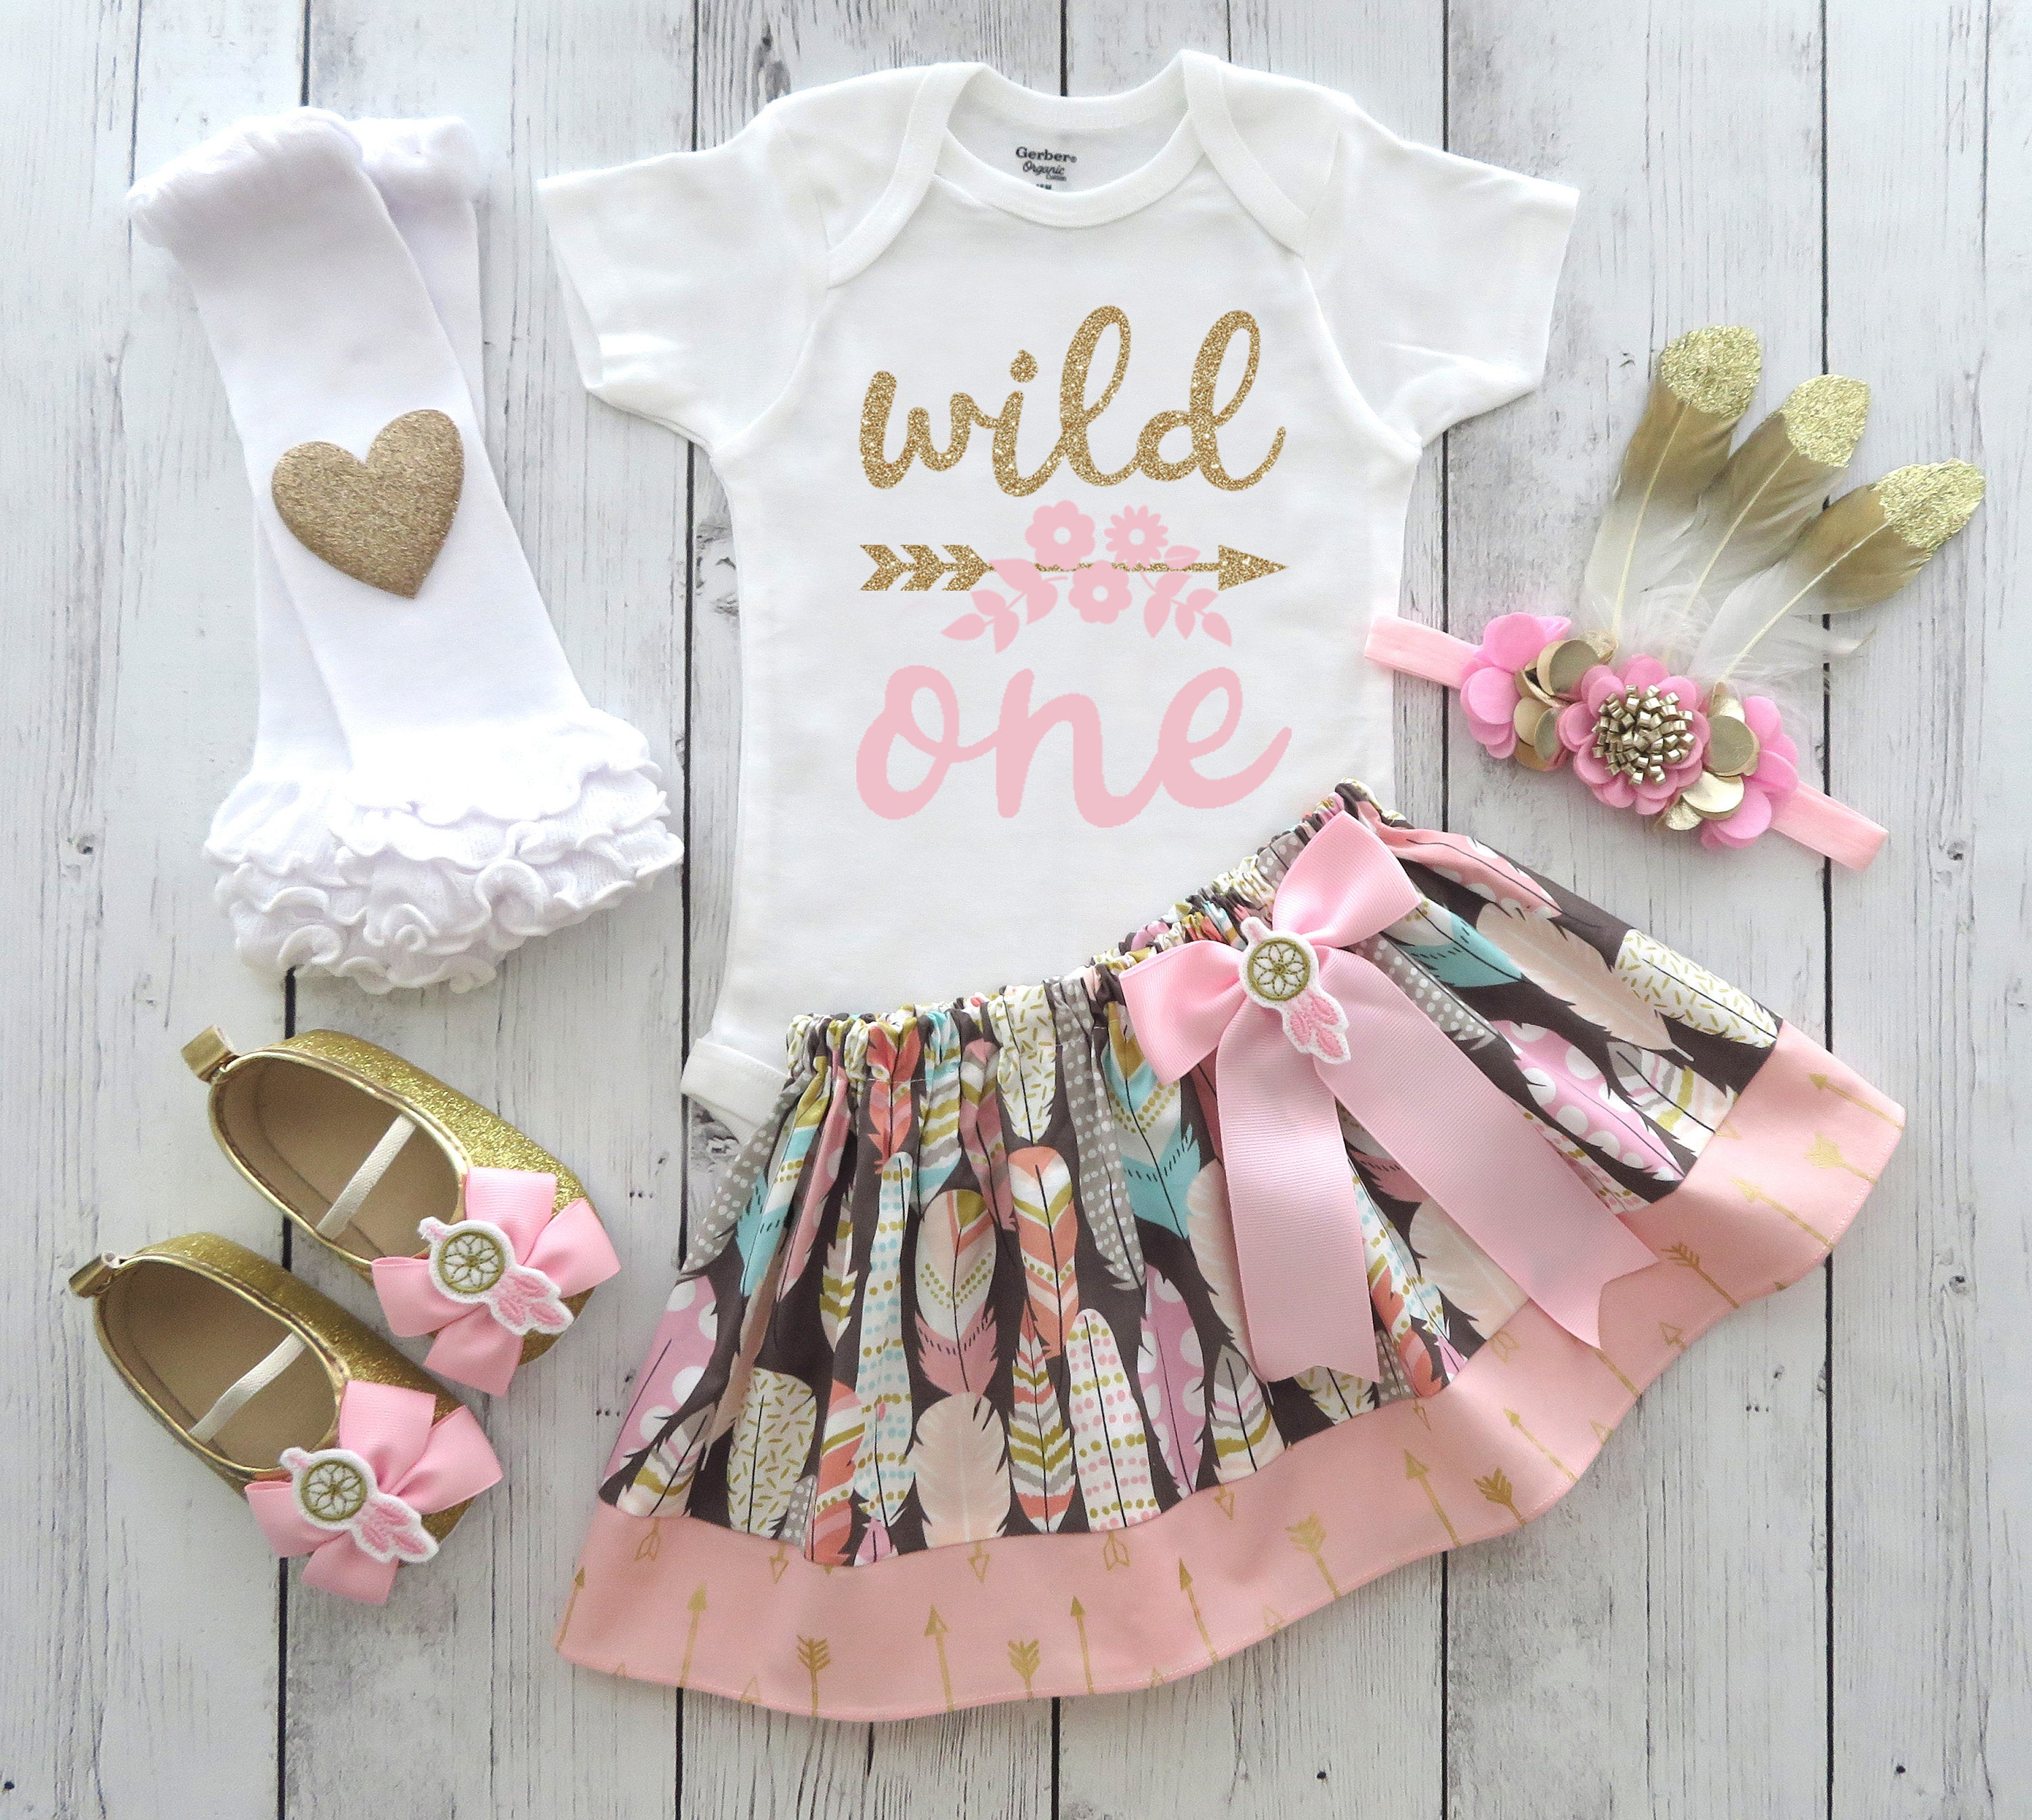 Wild One Birthday Outfit for Girl with mocassins and feather headband - boho chic, wild one 1st bday outfit girl, tribal birthday girl